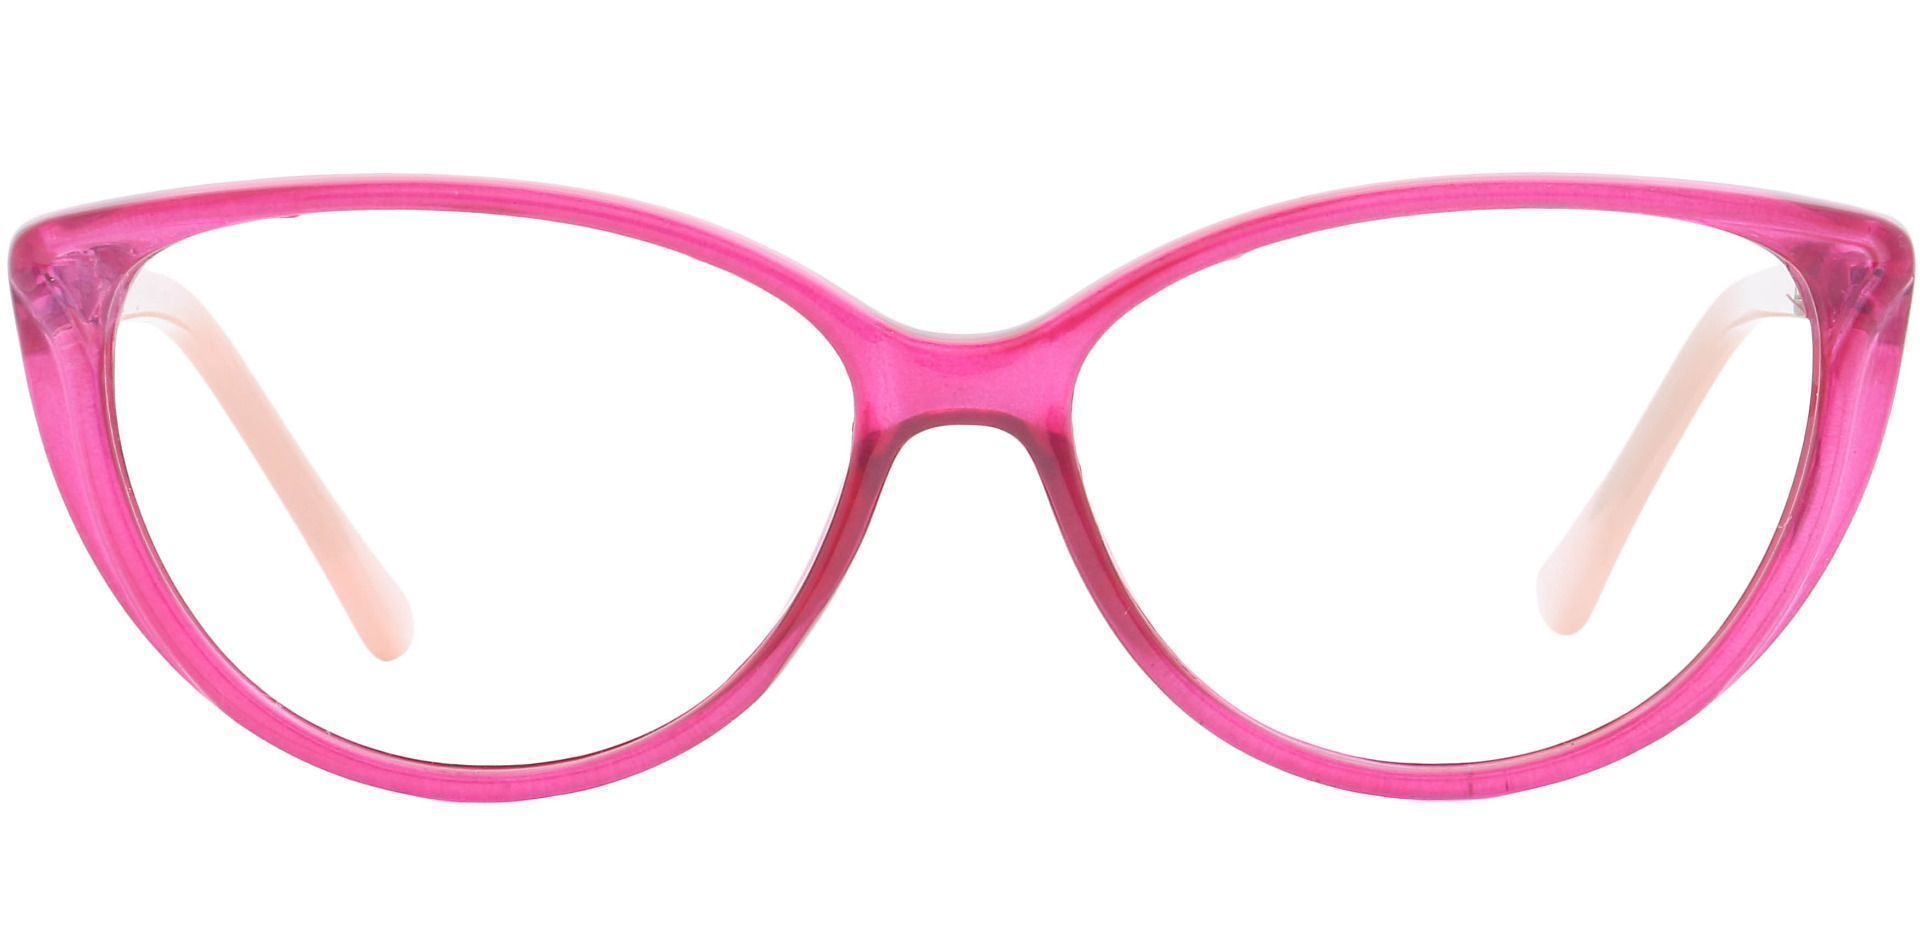 Amore Cat-Eye Progressive Glasses - Pink